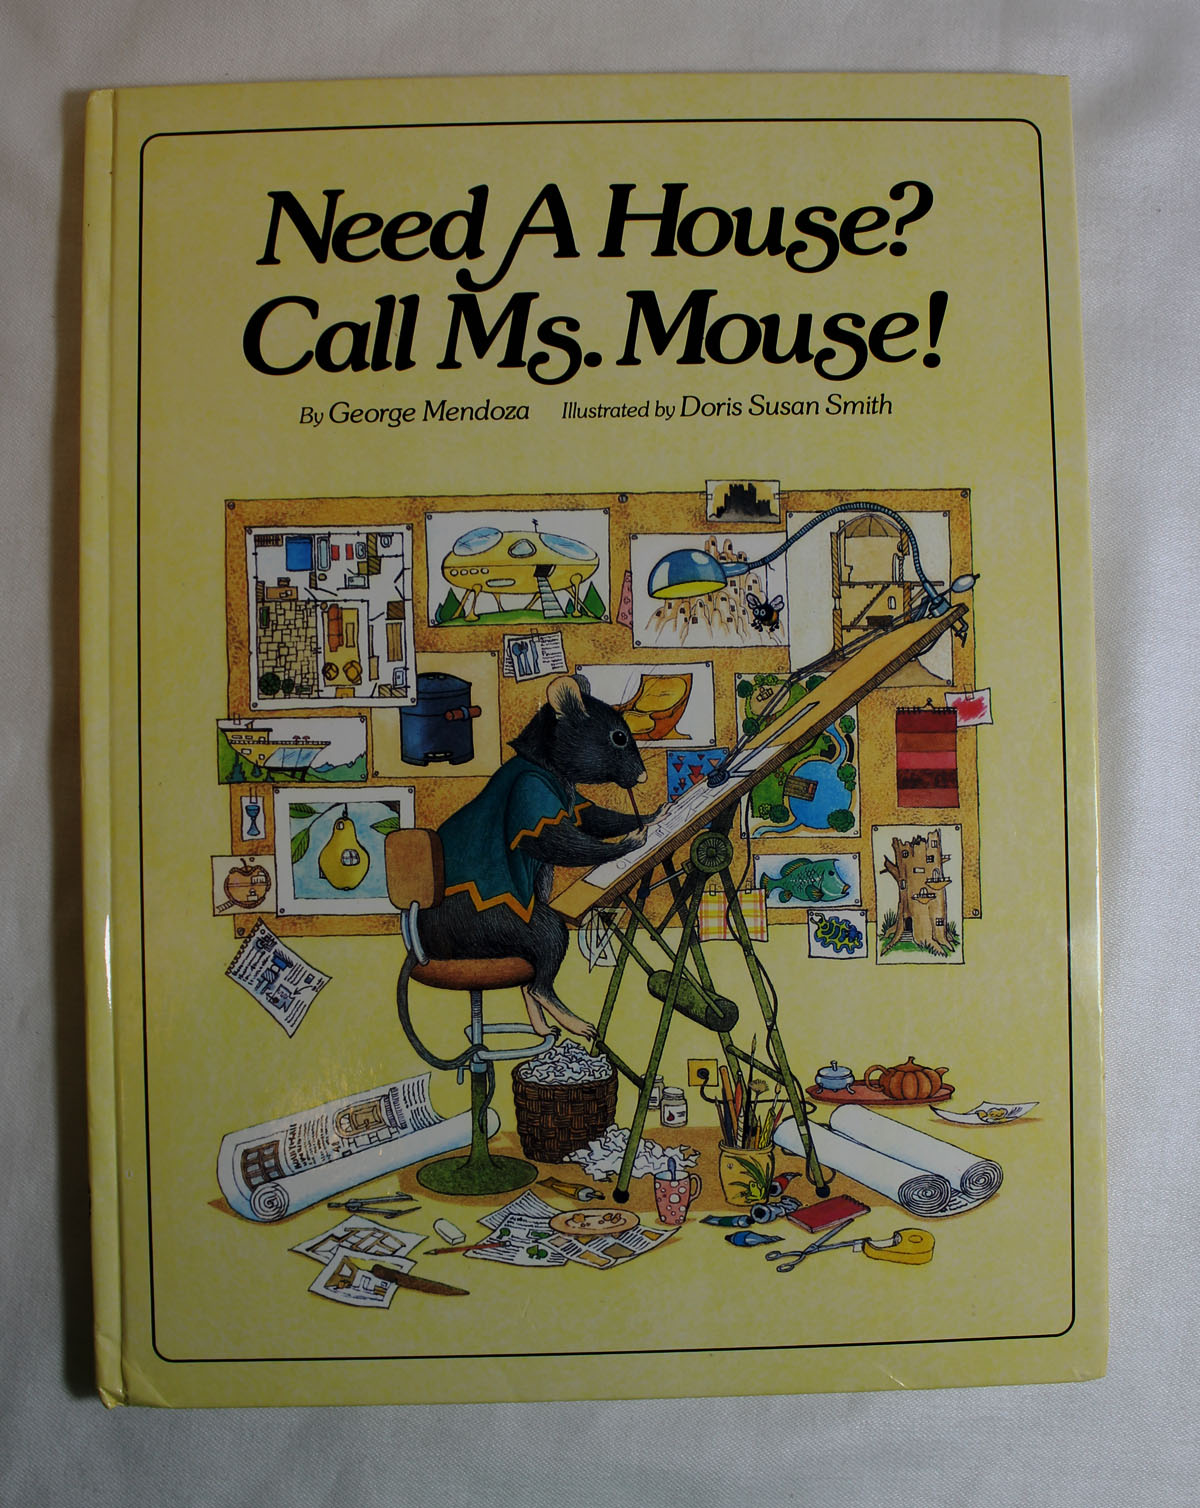 Need a house call ms mouse by george mendoza northwest for Need a house